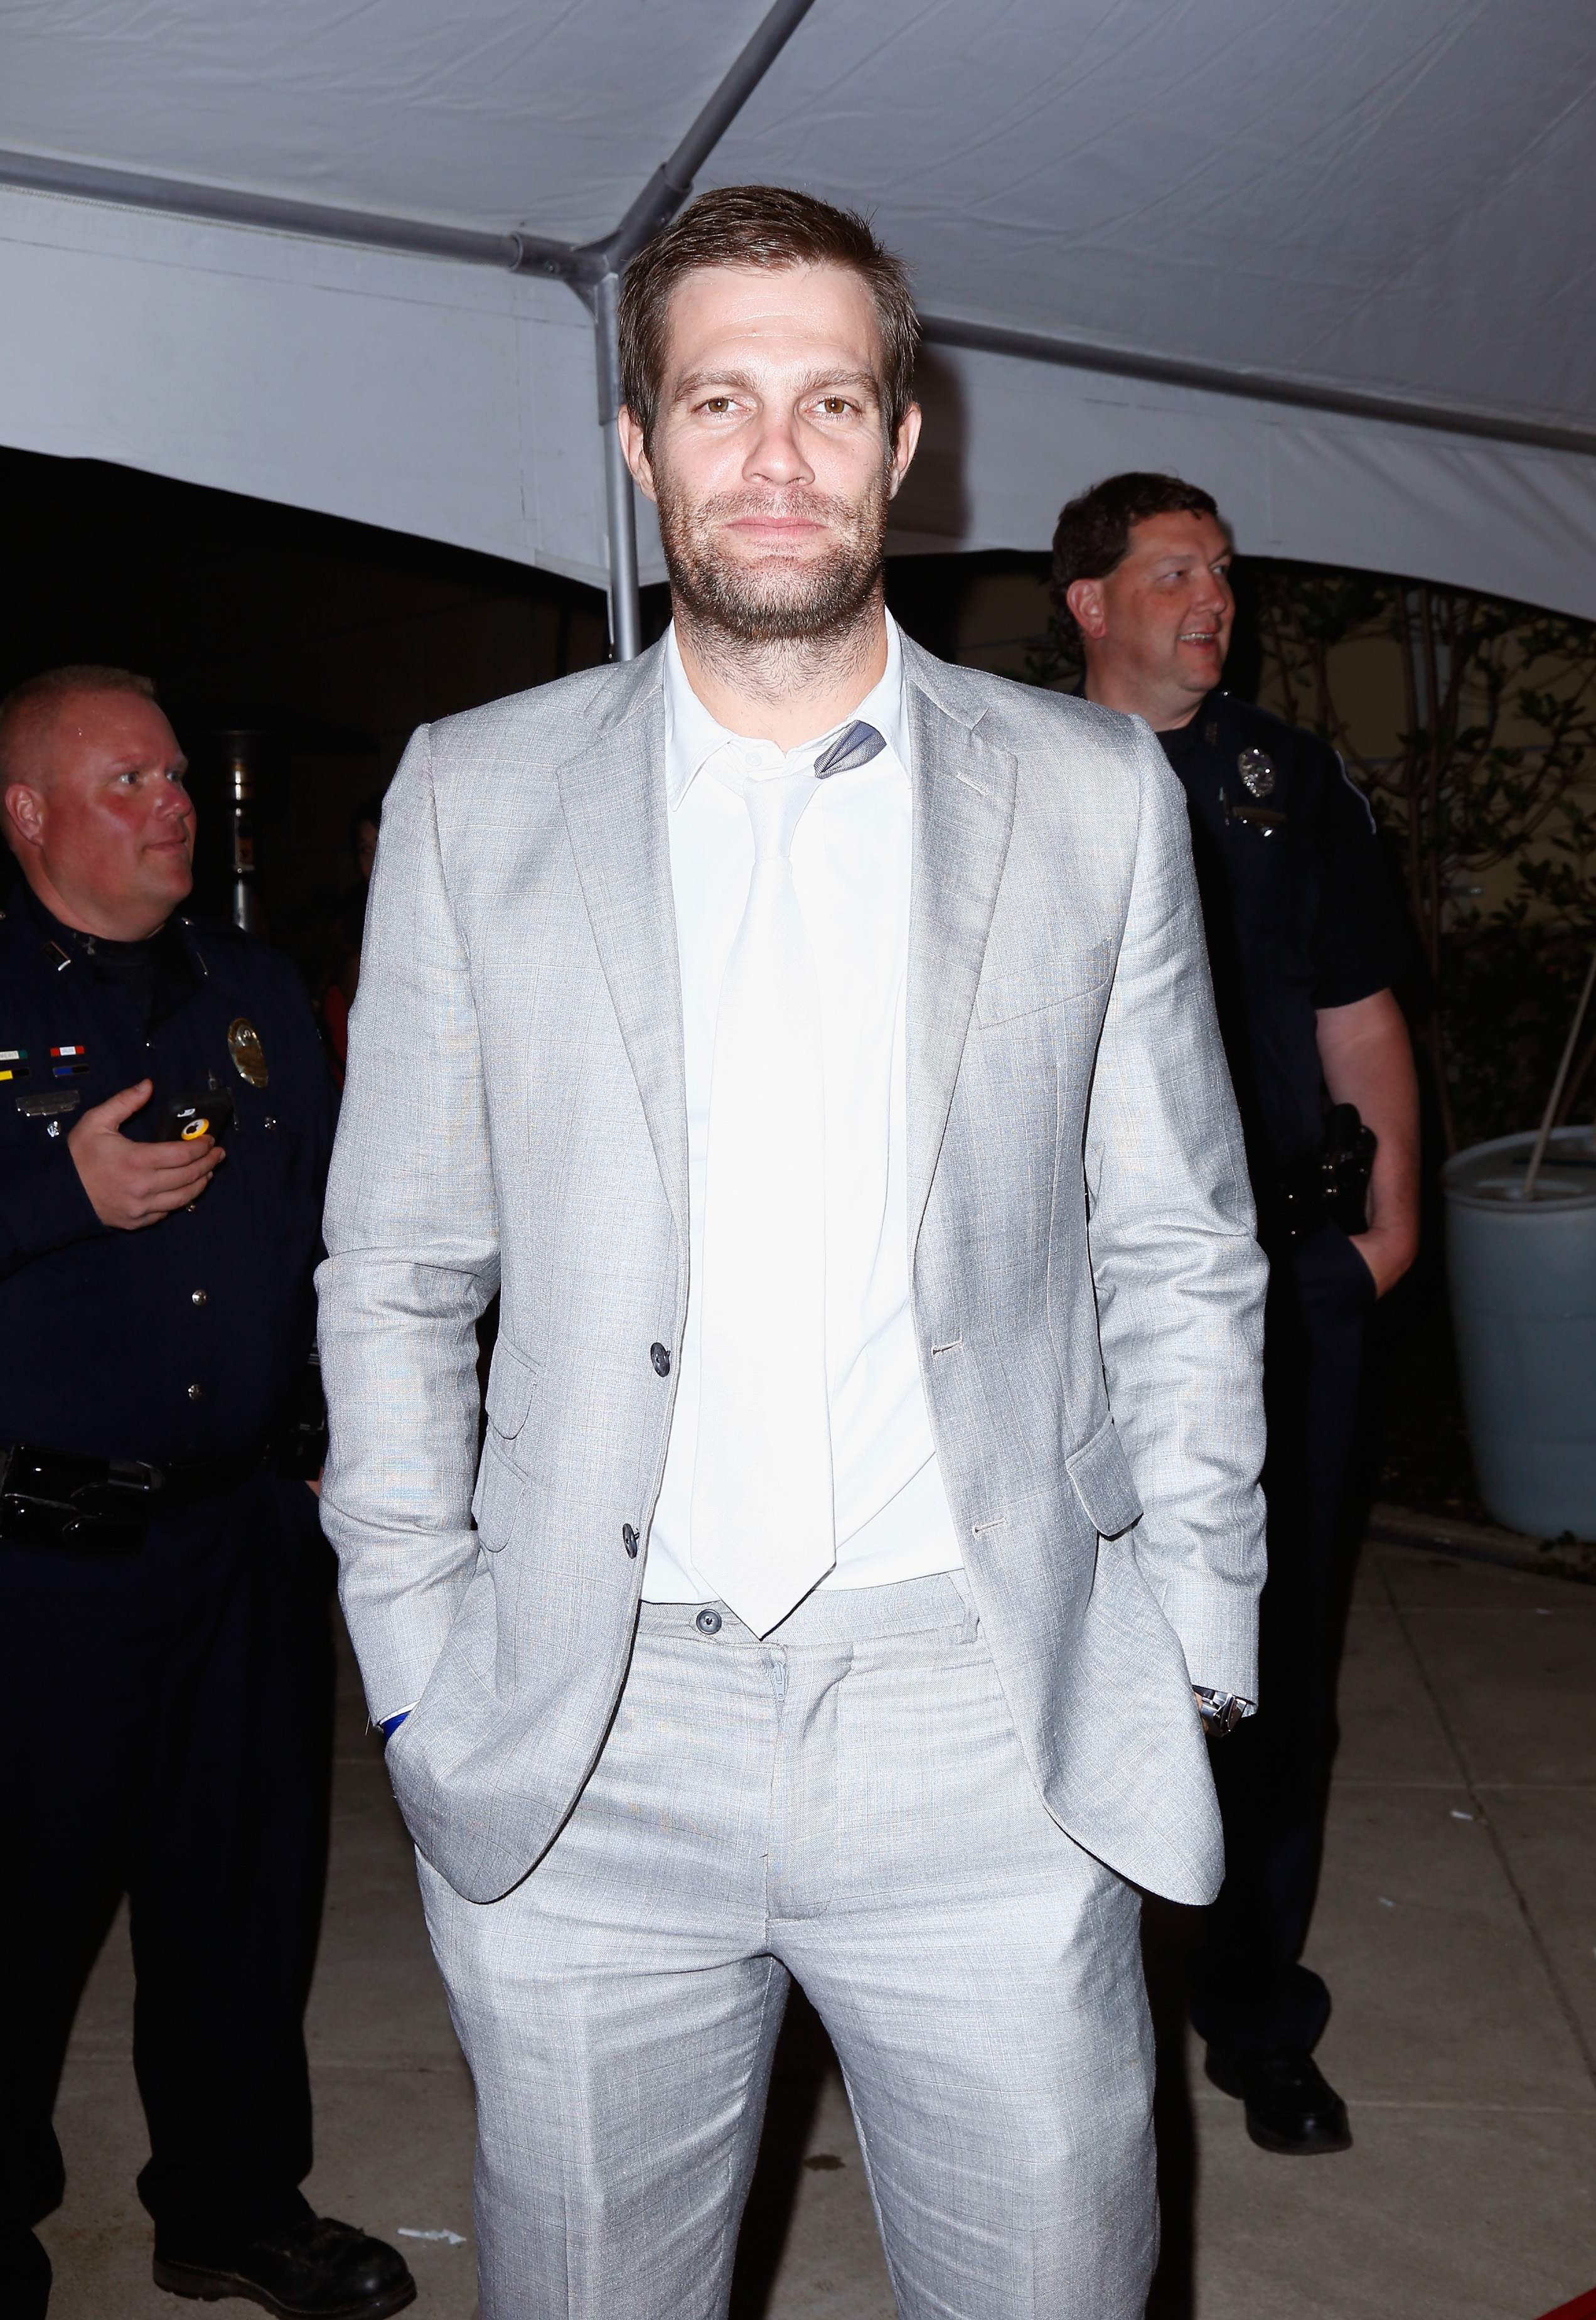 Actor Geoff Stults attends the Fourth Annual Fillies & Stallions party sponsored by Captain Morgan White Rum at Mellwood Arts Center on May 2, 2014 in Louisville, Kentucky.  (Photo by Michael Hickey/Getty Images for Captain Morgan White)